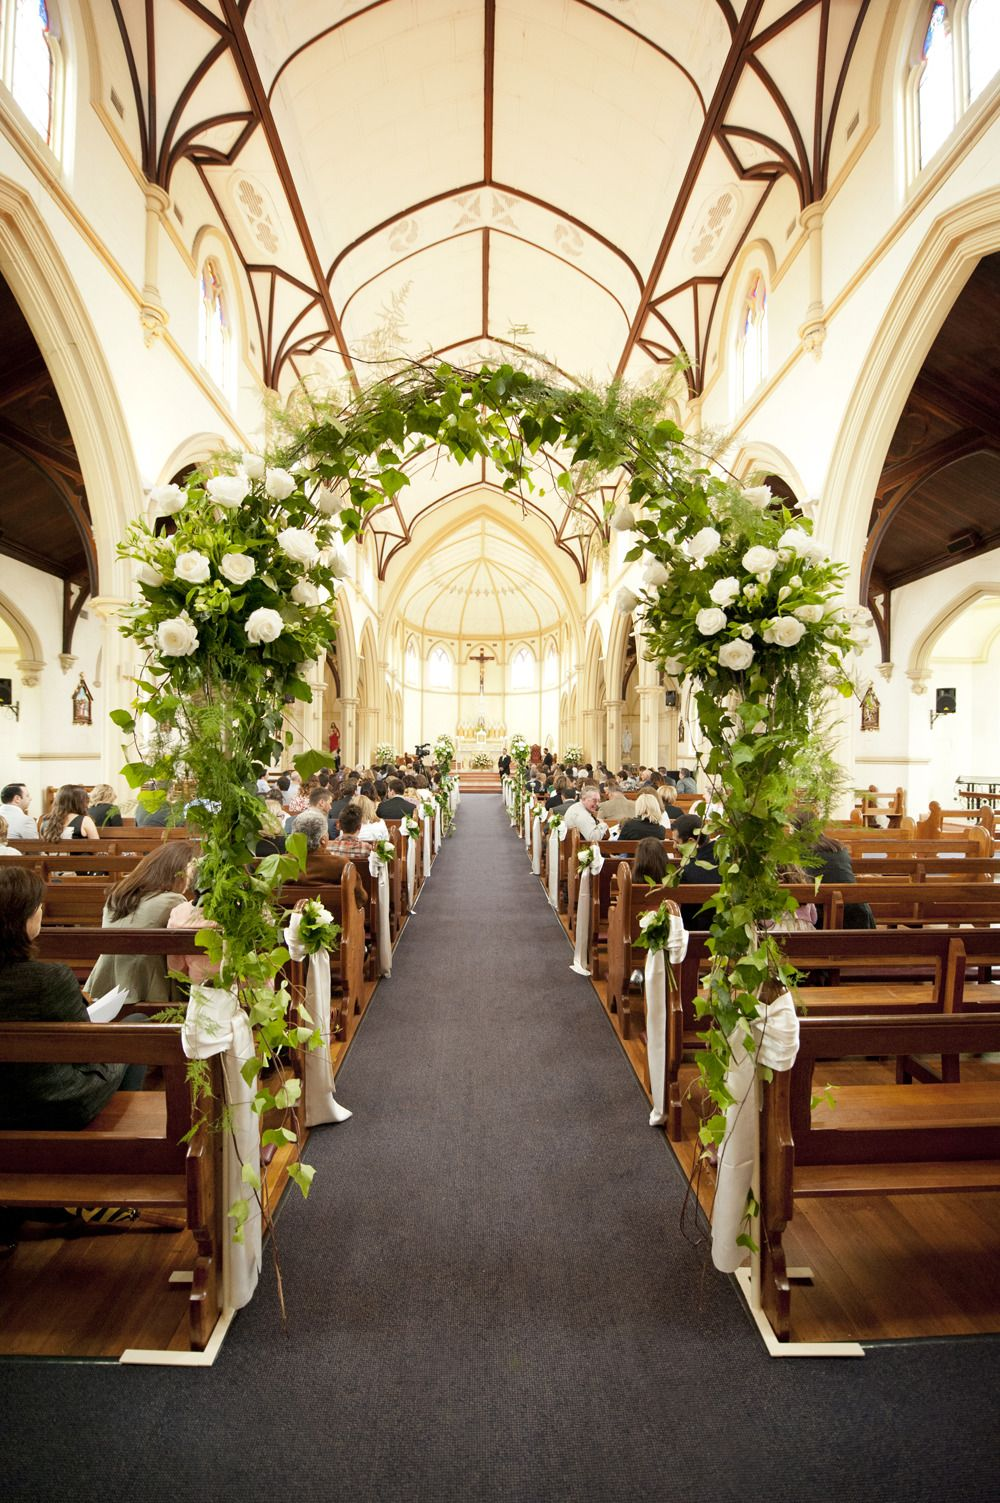 A Floral Arch IN The Church